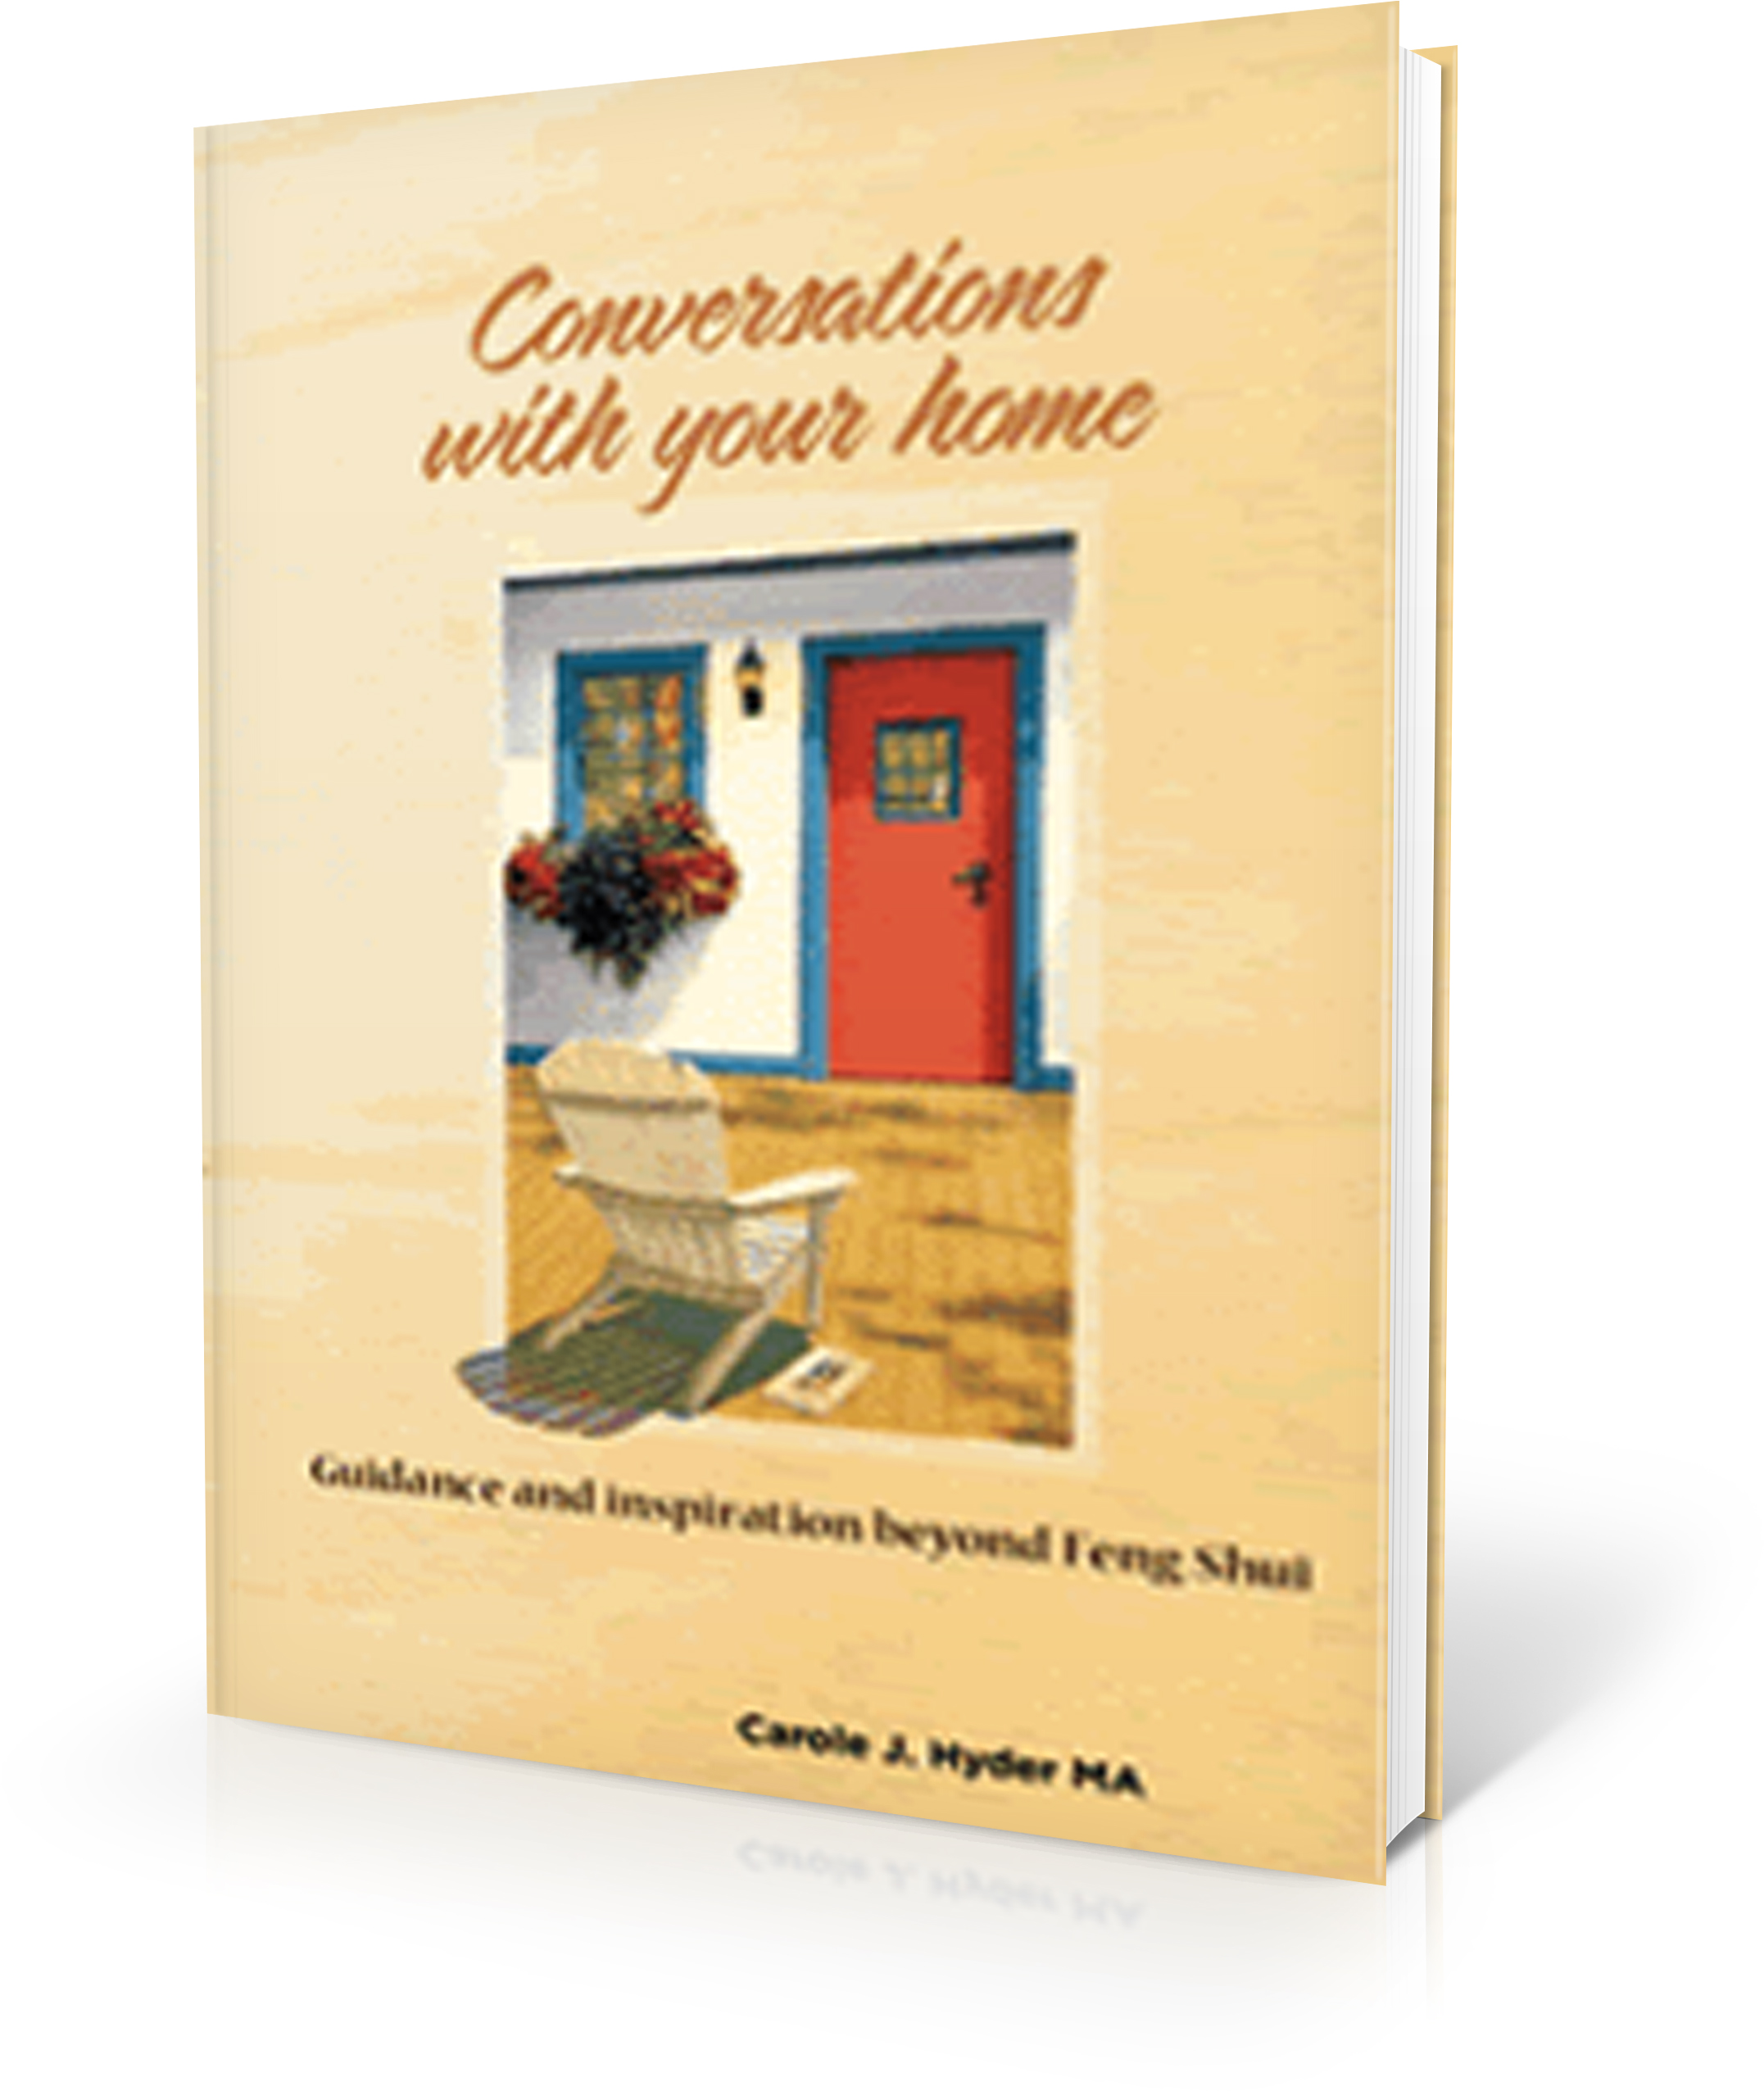 Feng Shui And Beyond: Conversations With Your Home: Guidance And